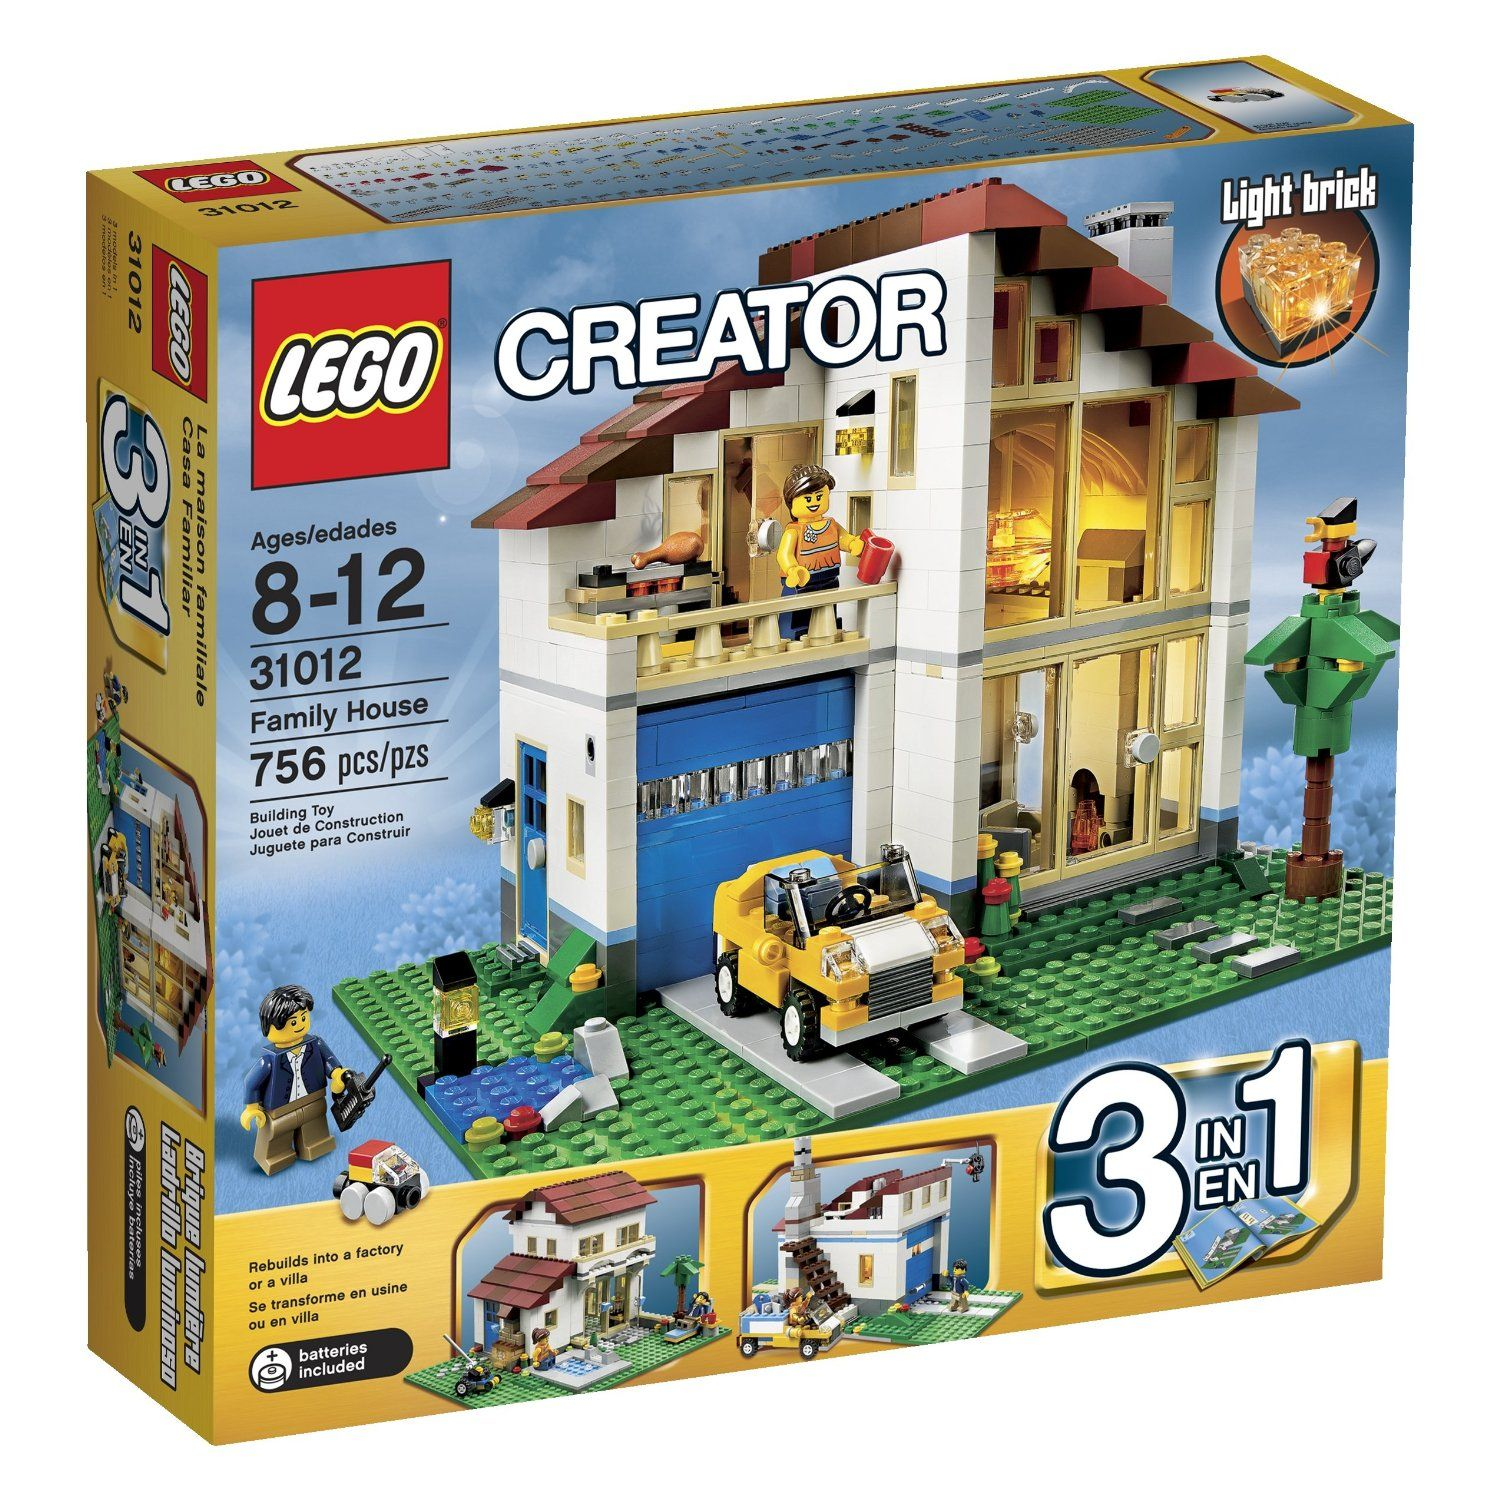 Lego Creator 3 in 1 Home Playsets are AWESOME